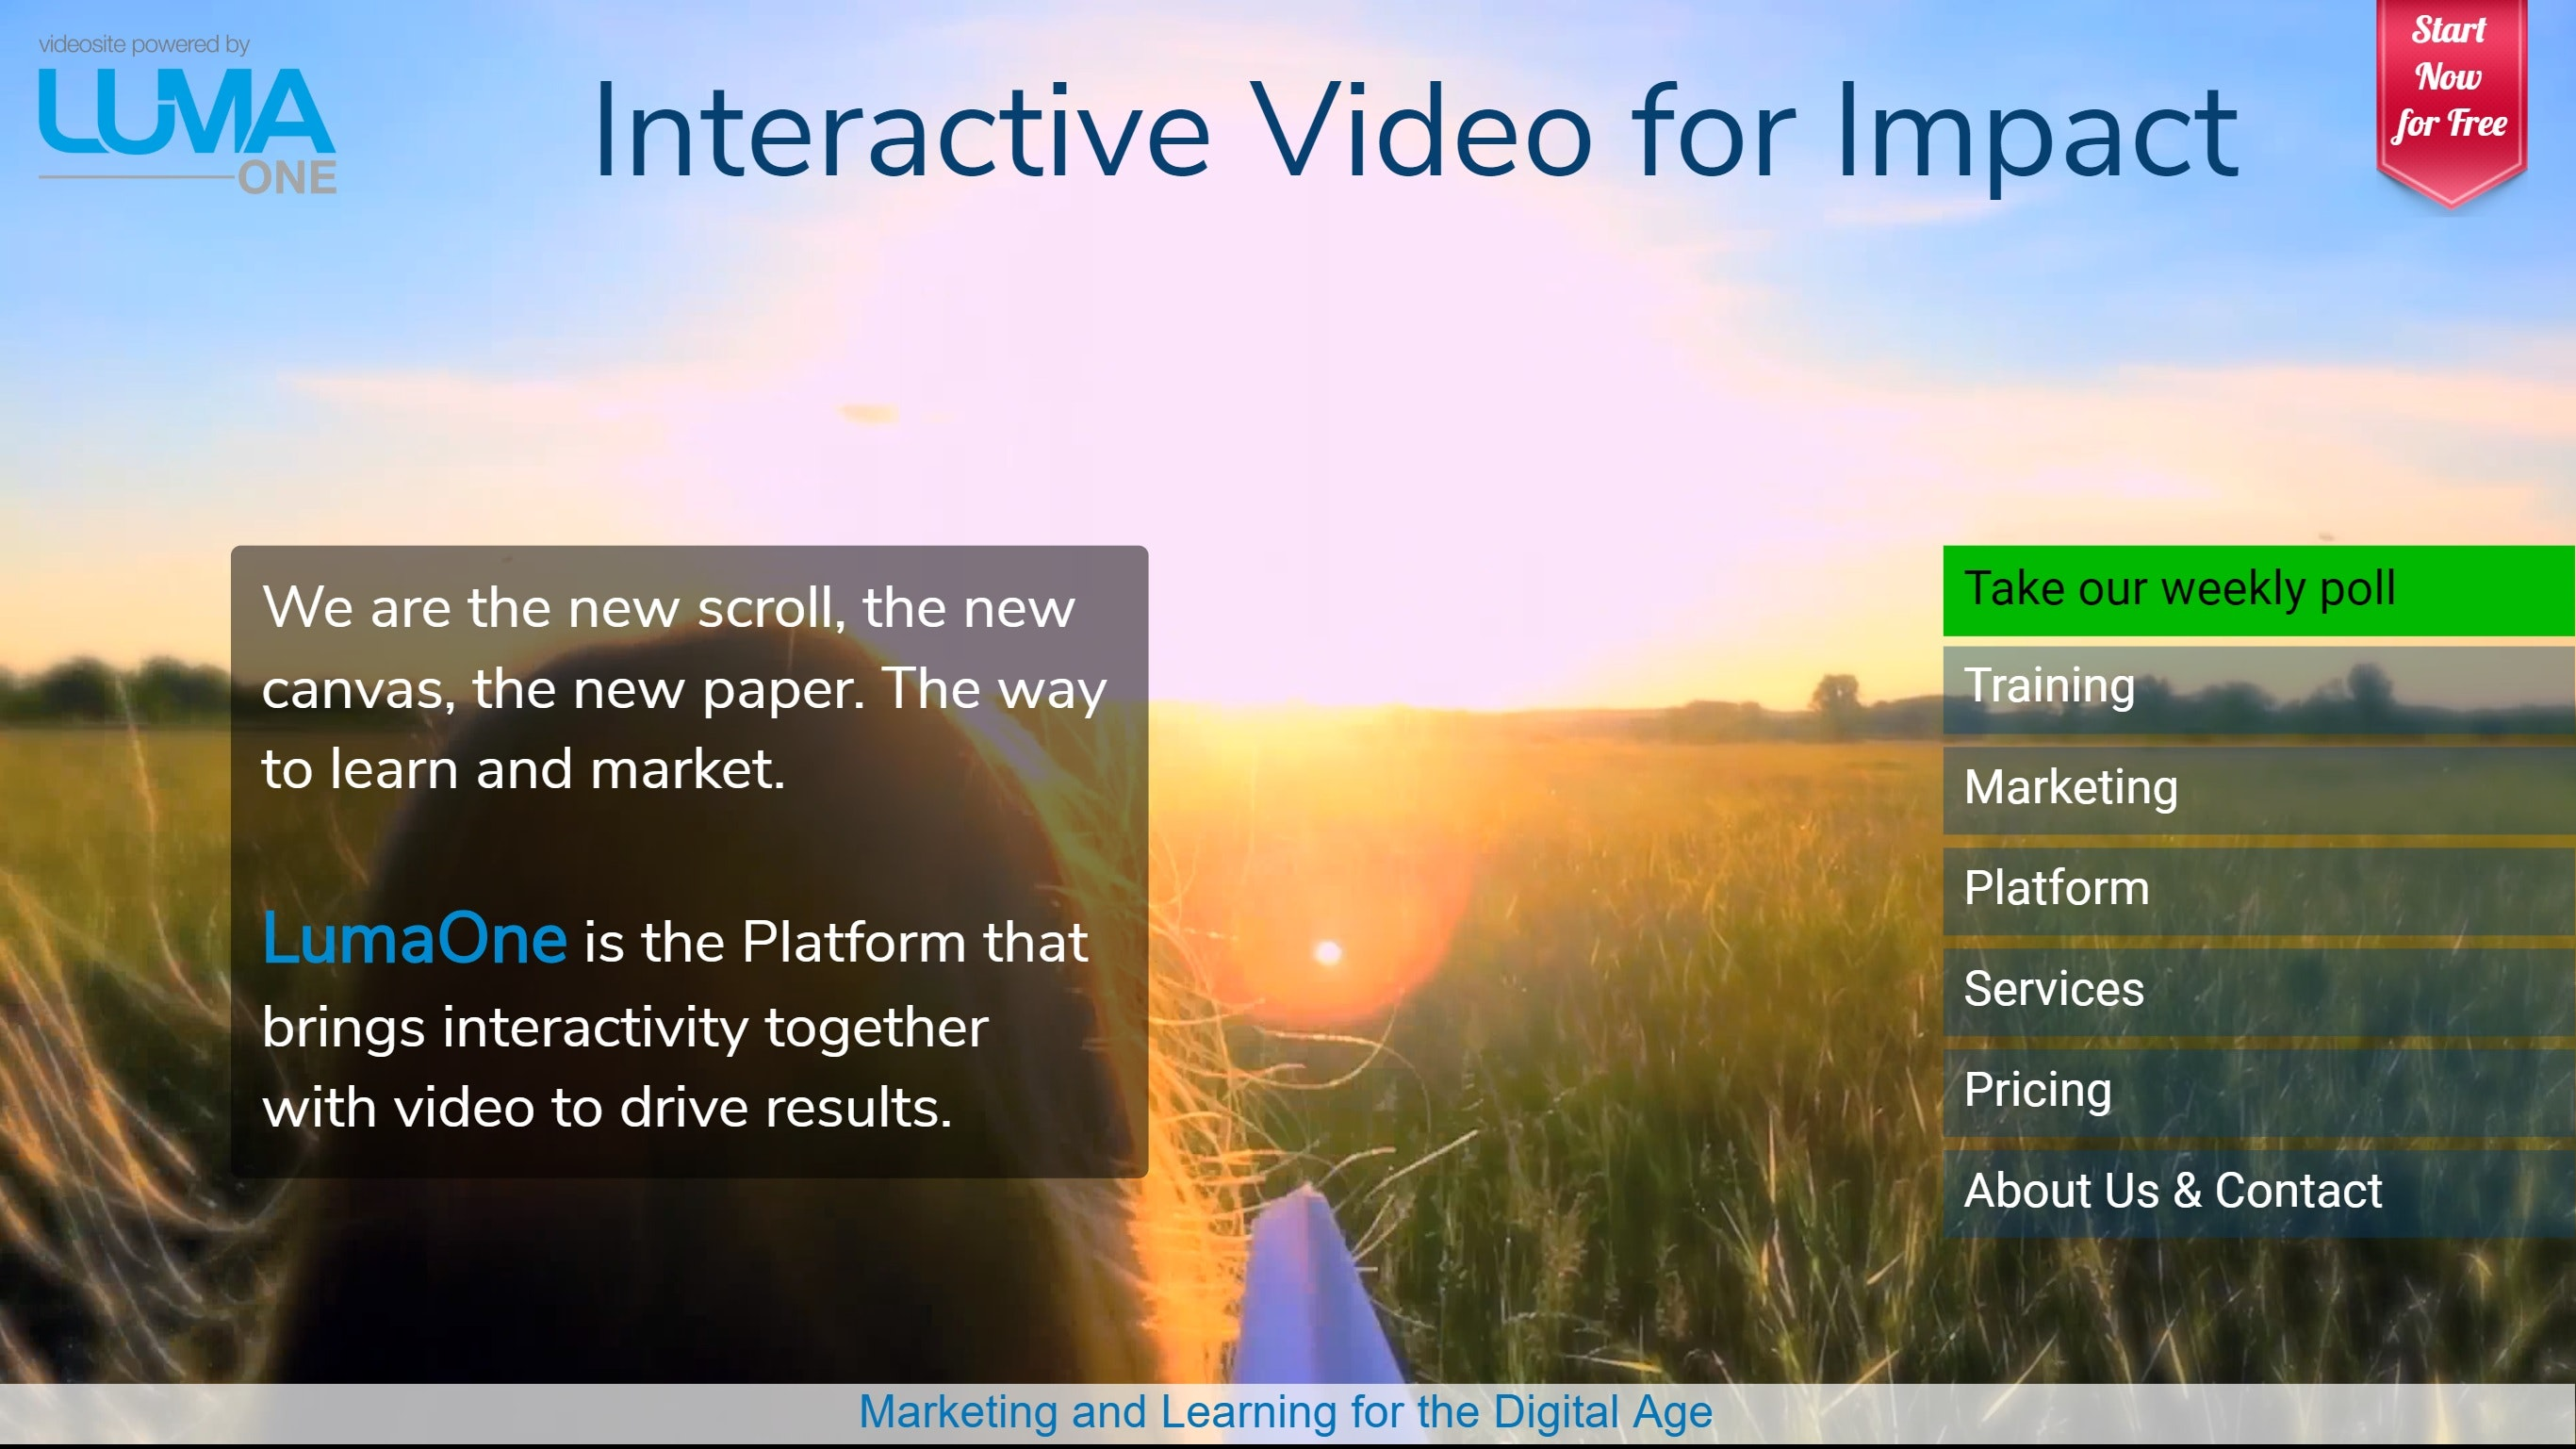 LumaOne - Its simple to make, deliver and measure interactive video